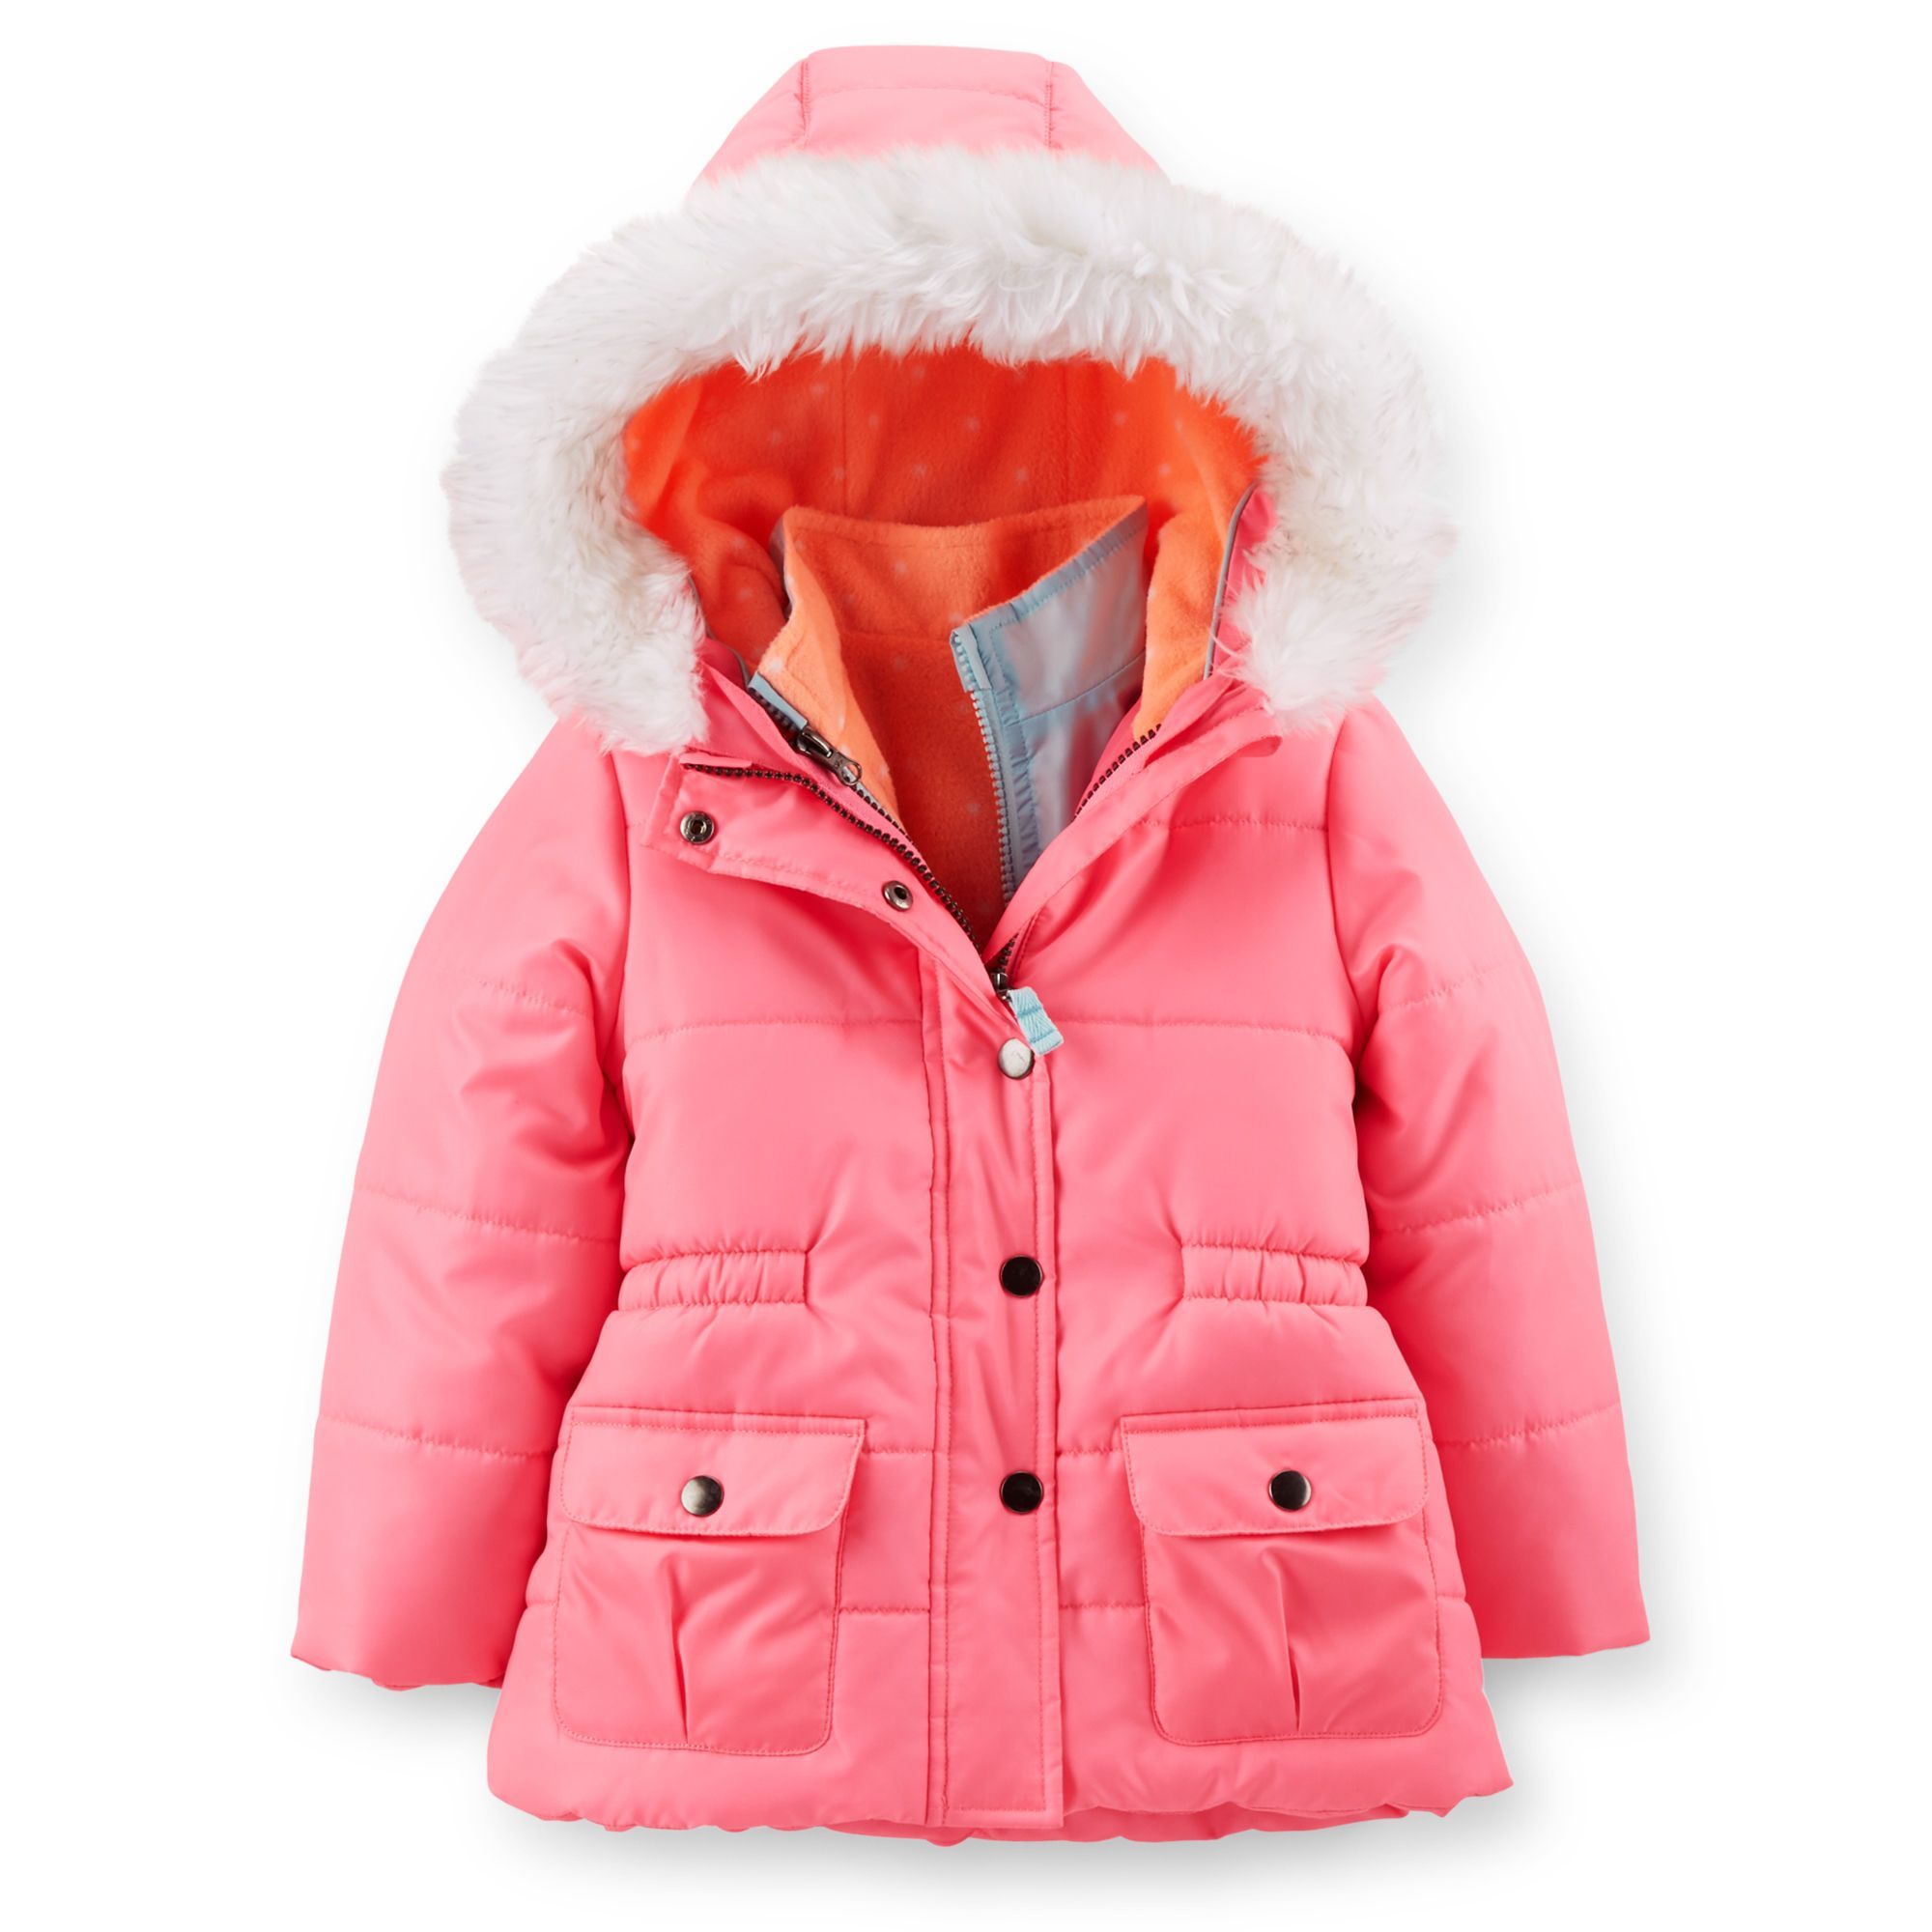 Carters Little Boys 4 In 1 Systems Jacket Toddler//Kid